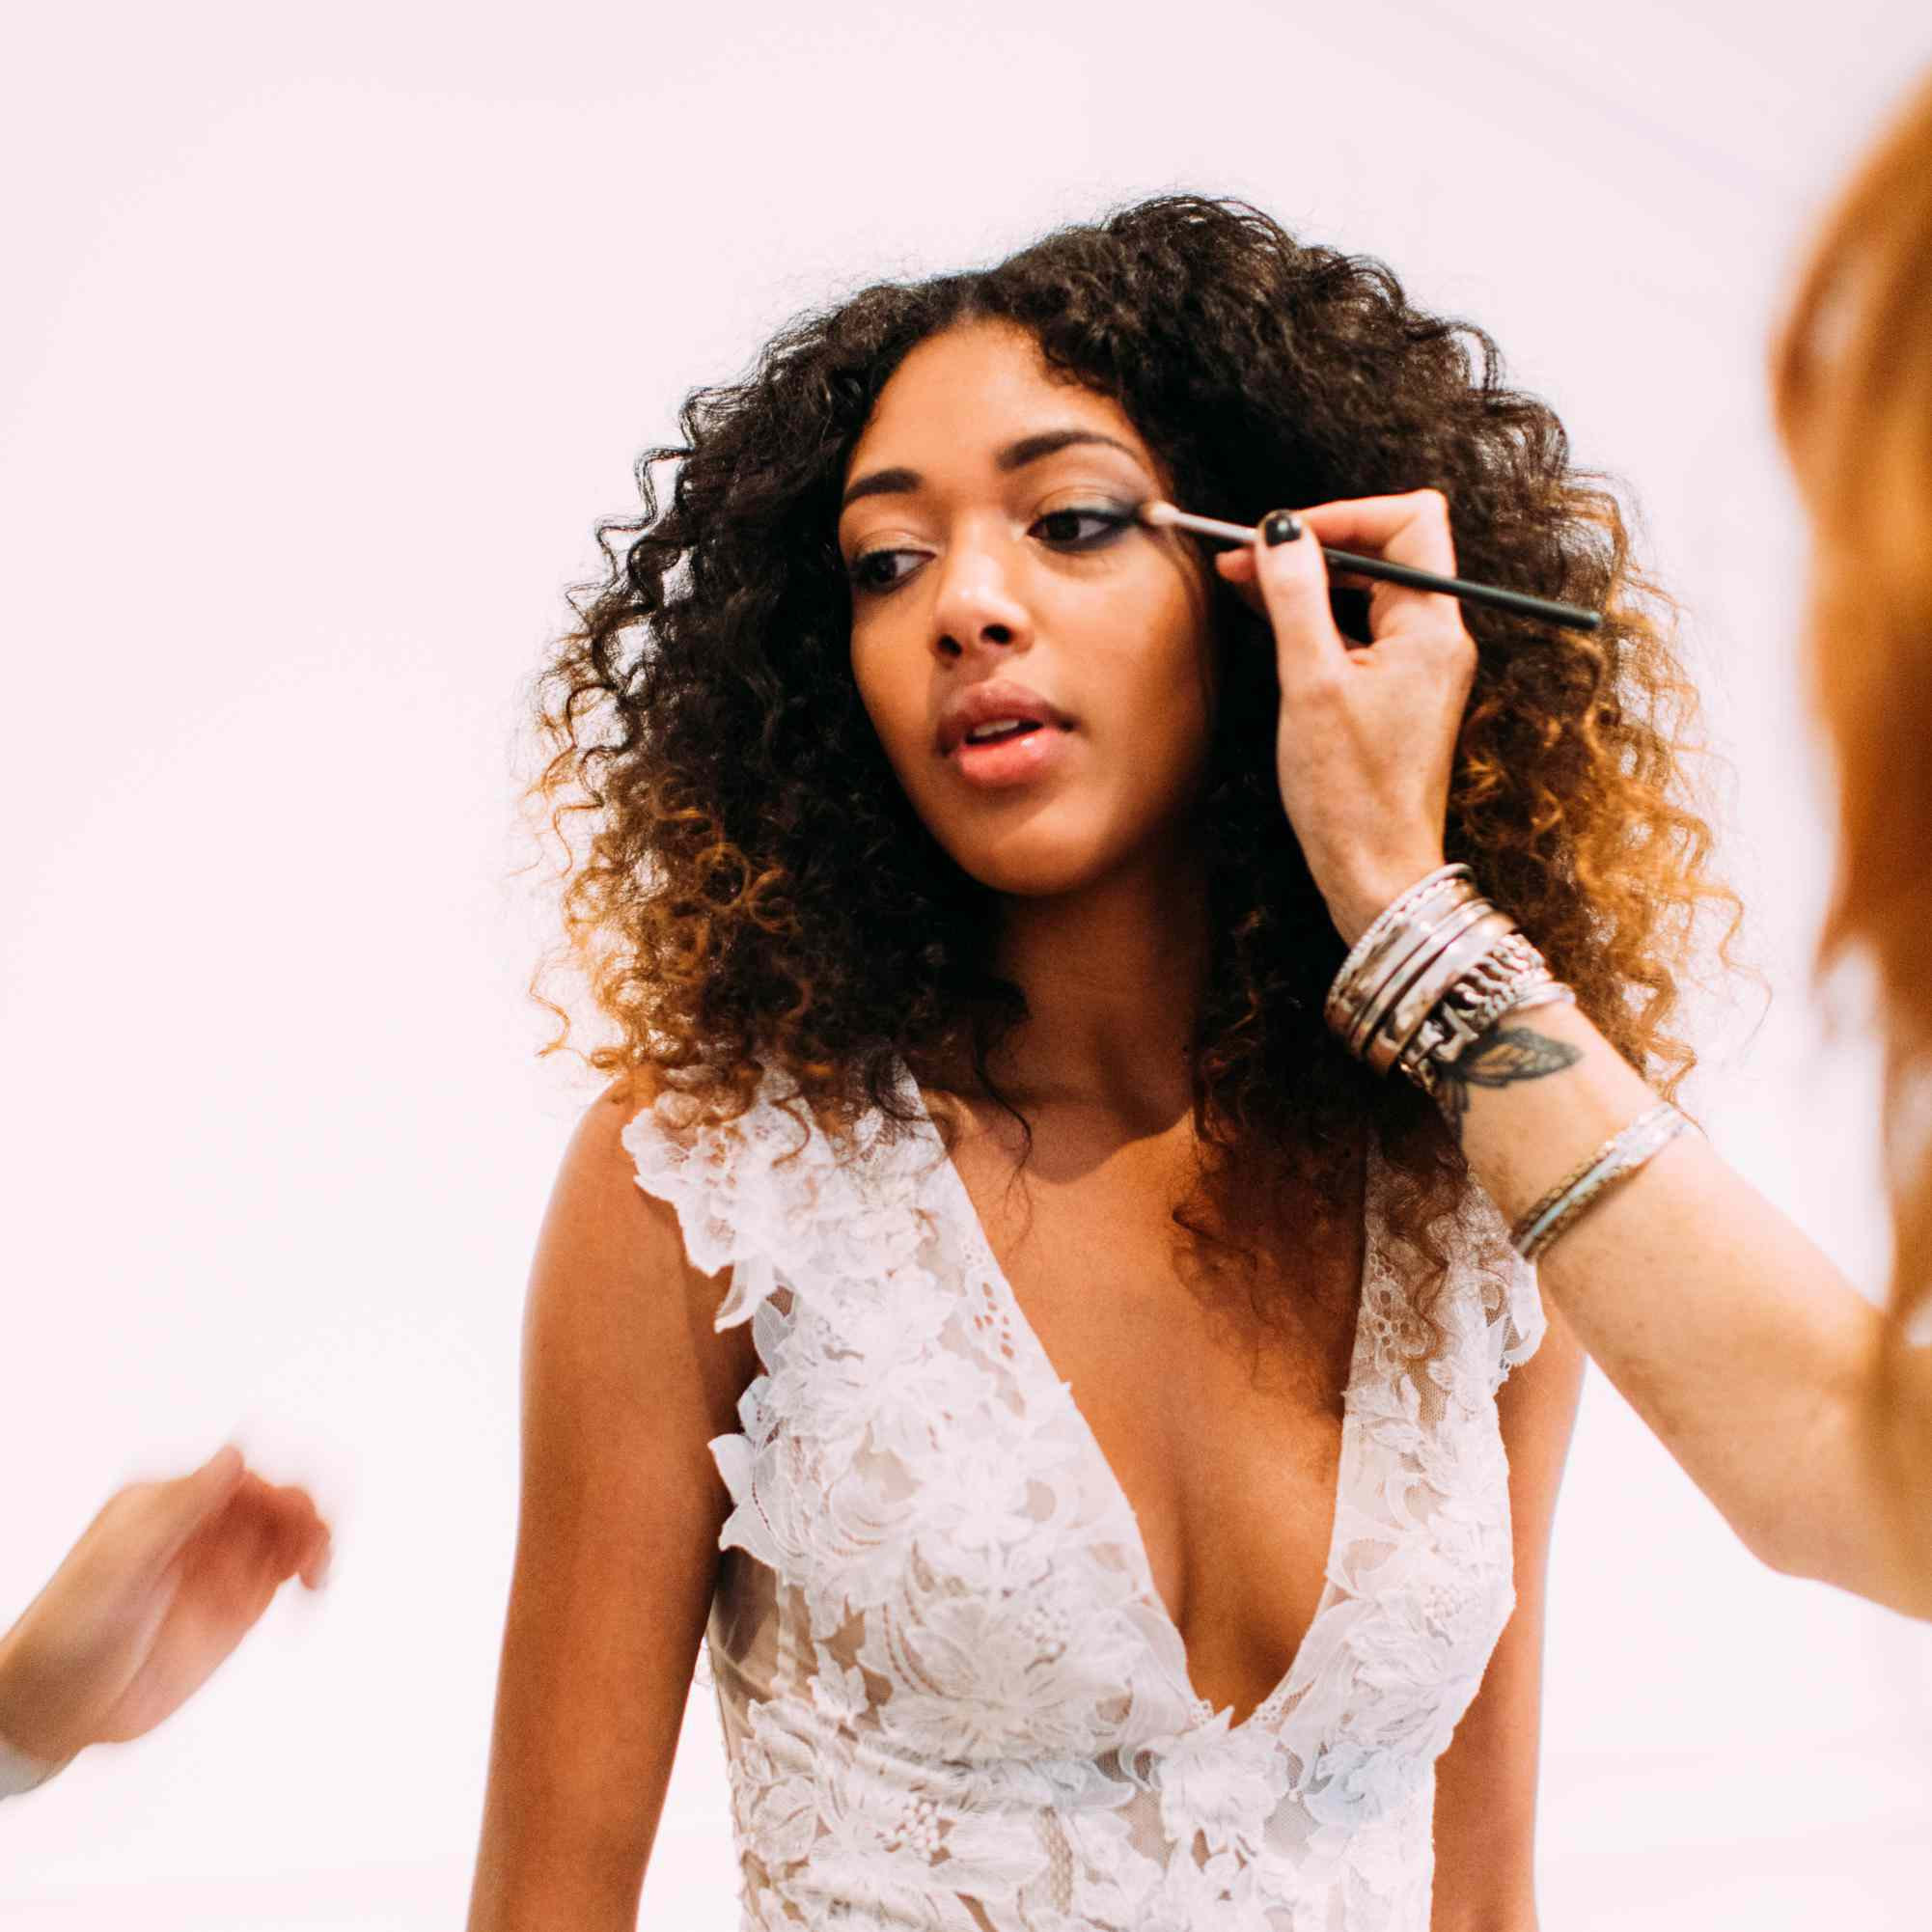 10 wedding makeup tips every bride should know according to